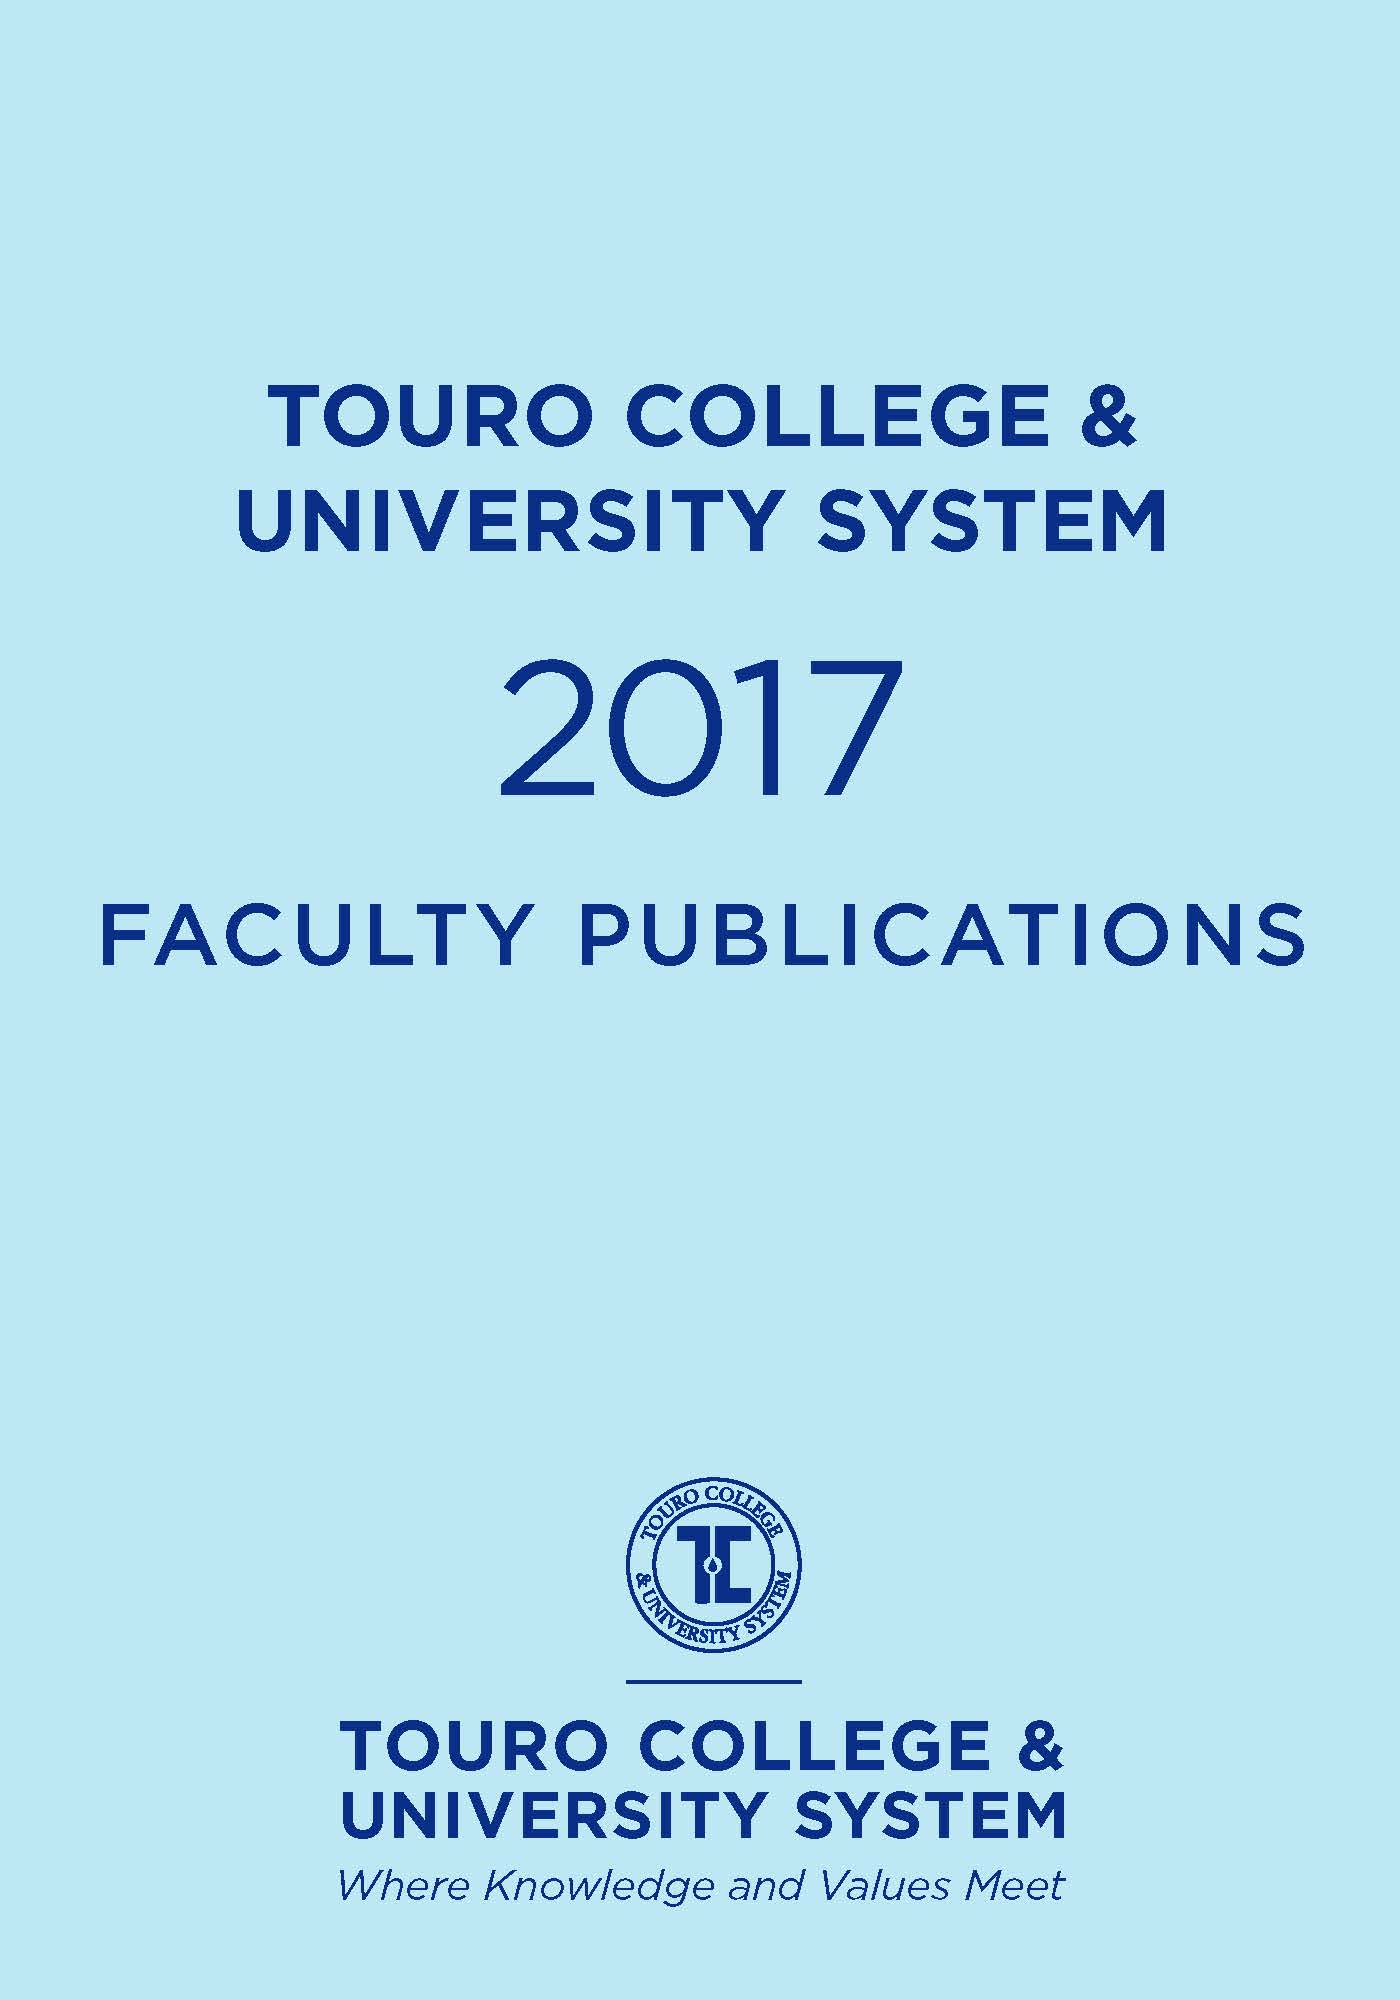 2017 Touro College & University System Faculty Publications